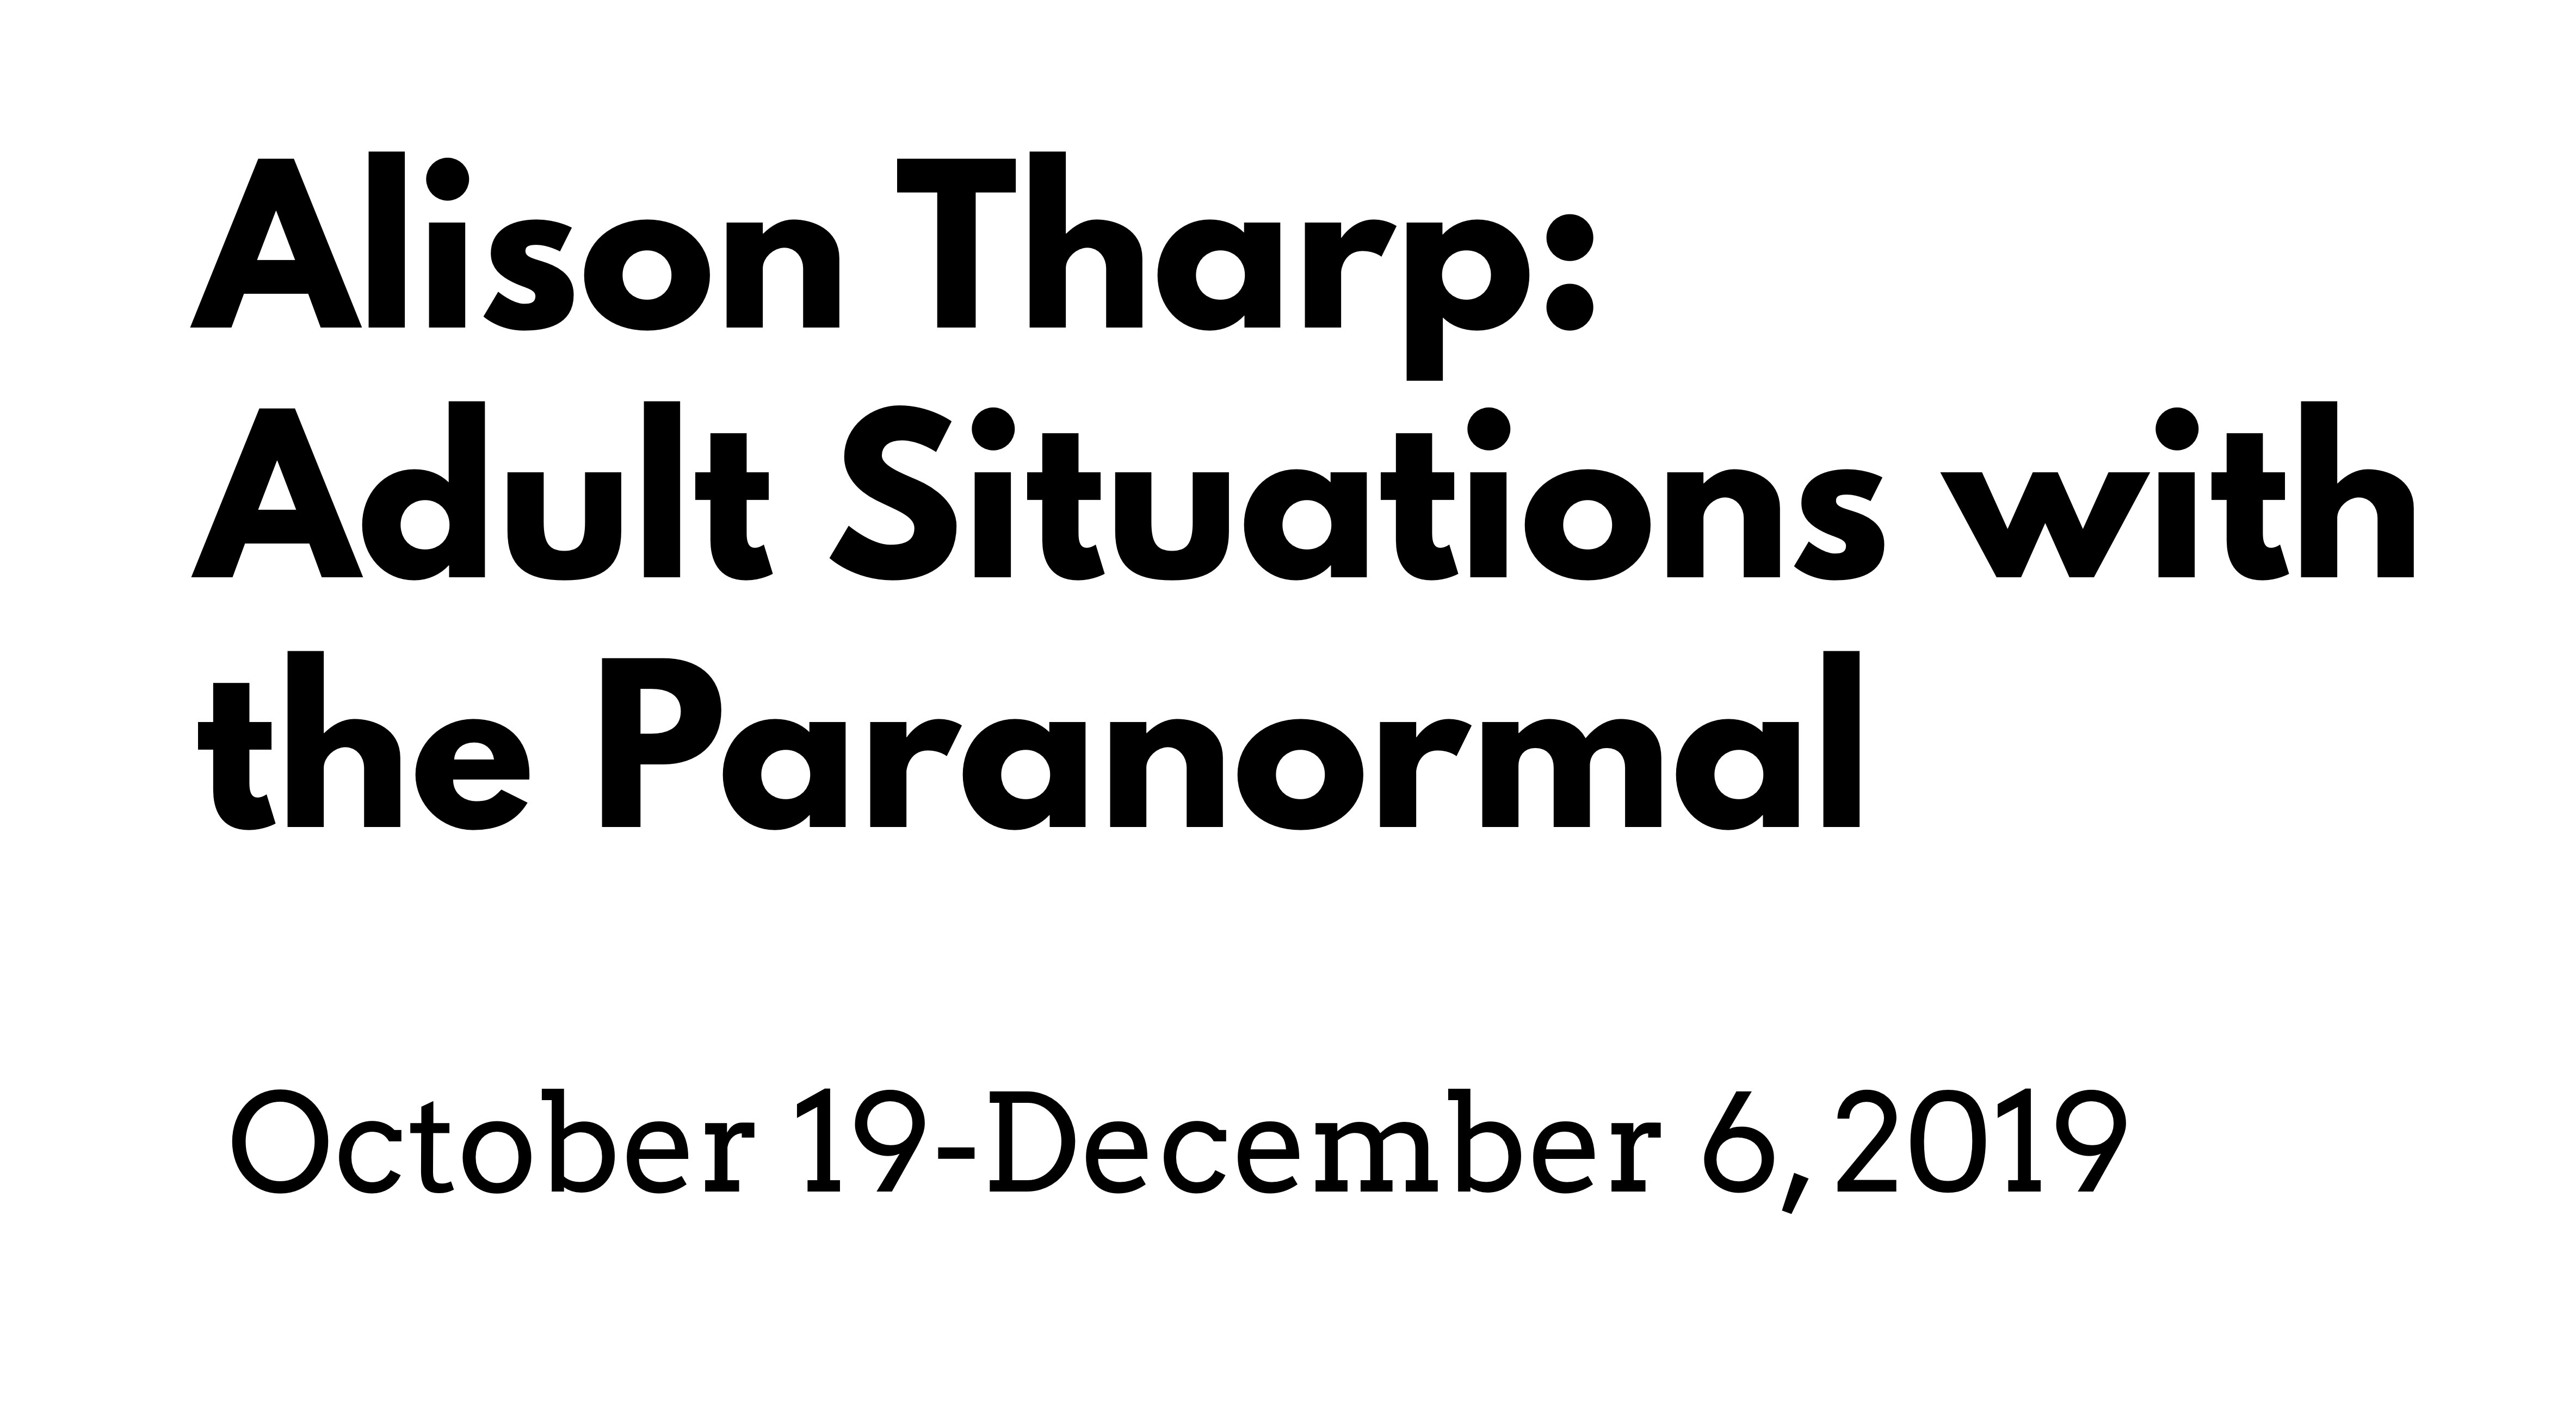 Adult Situations with the Paranormal